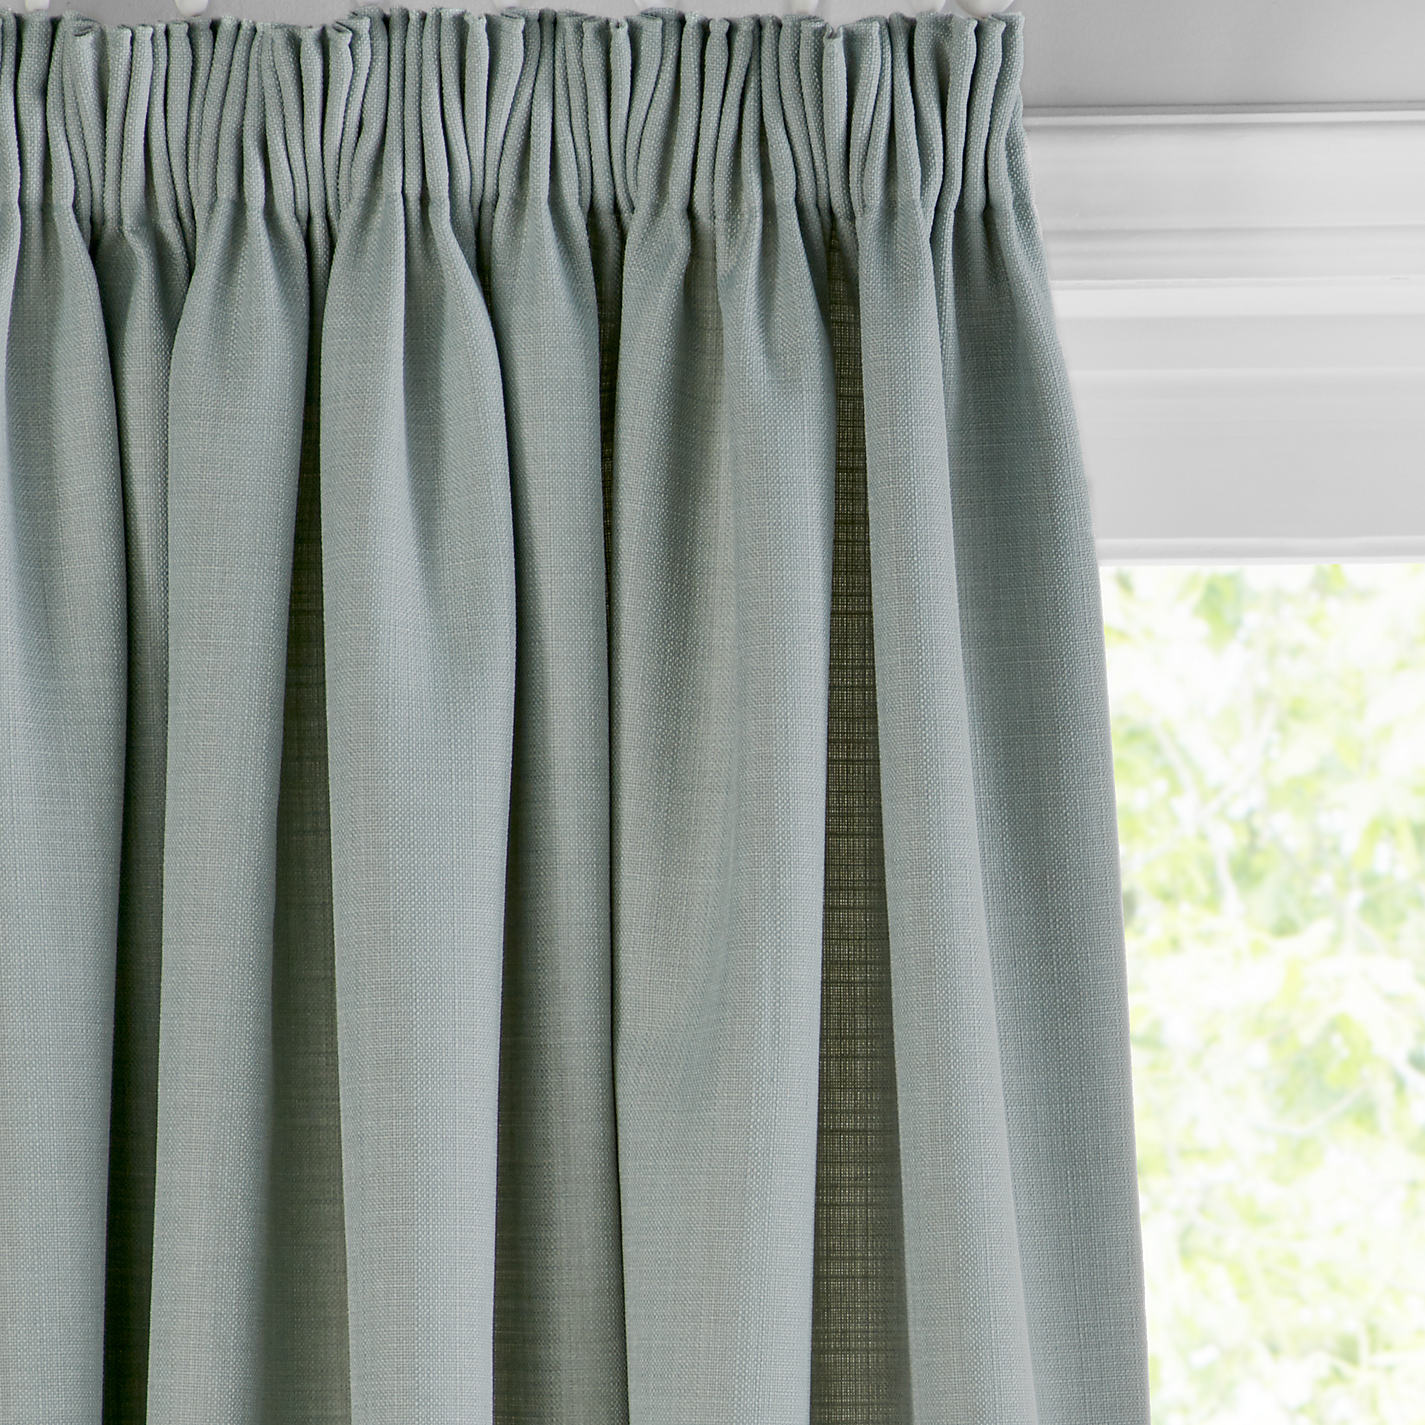 Pencil Pleat | Ready Made Curtains  for Pencil Pleat Curtains On Track  579cpg